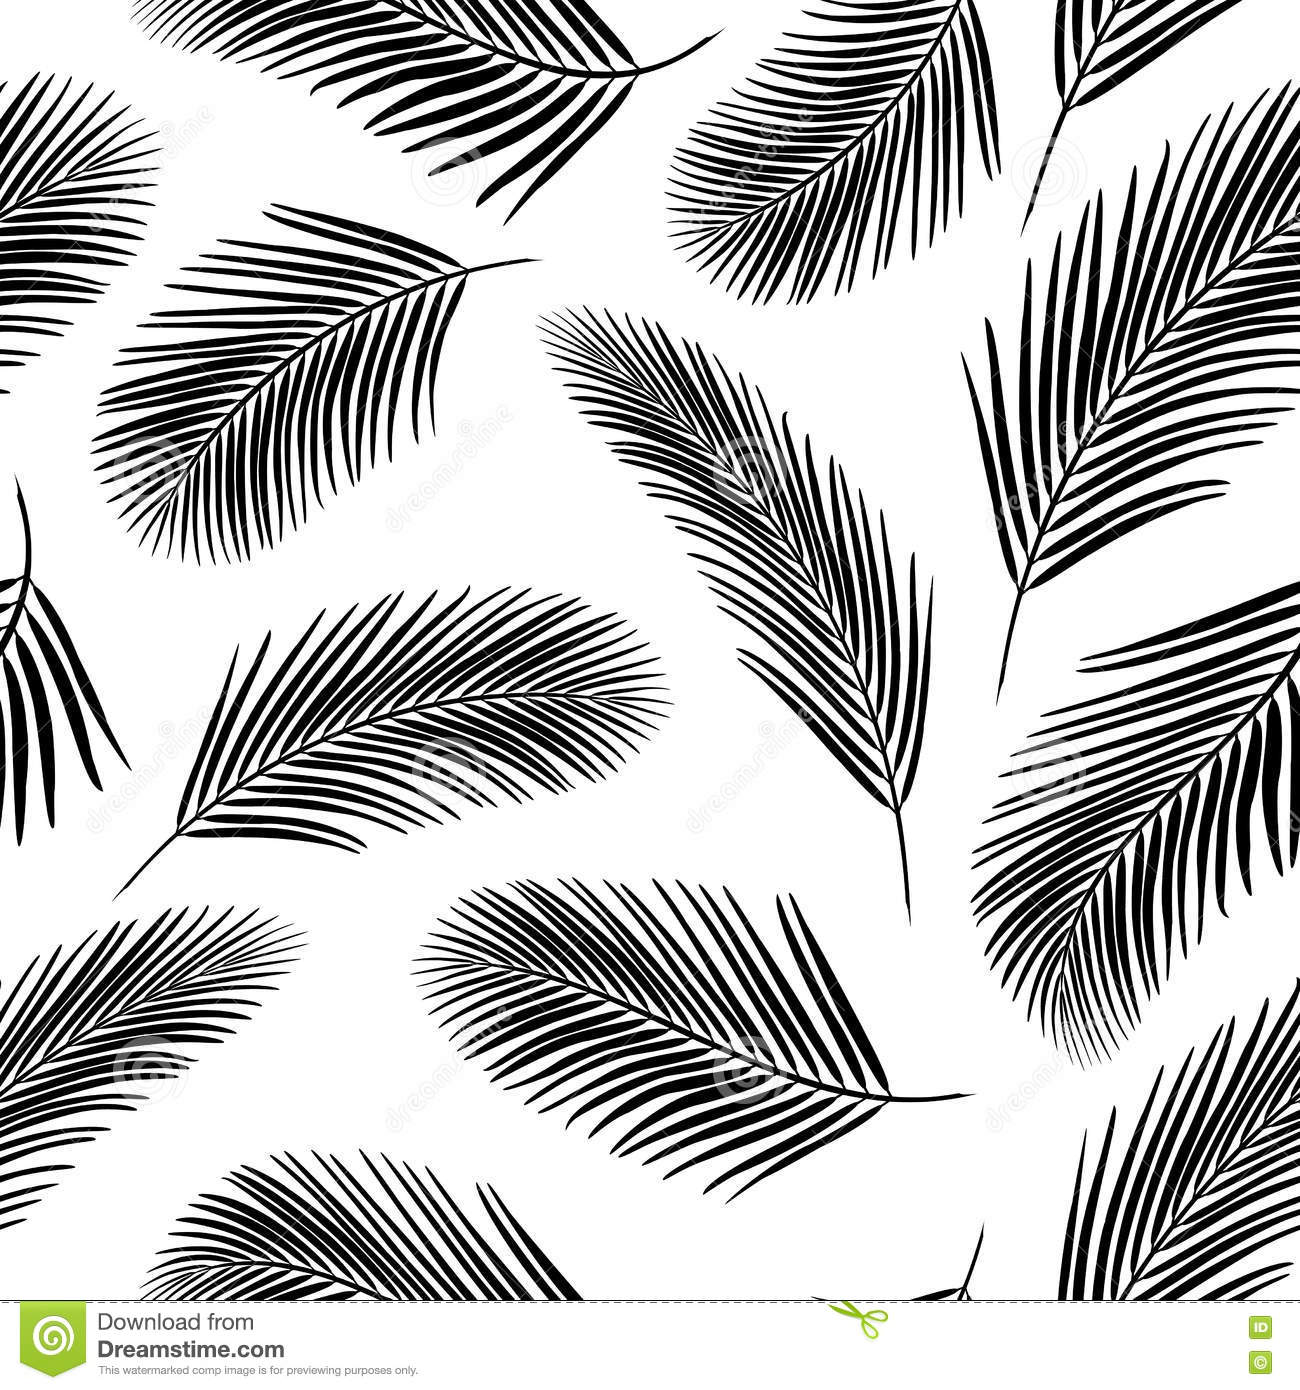 Palm Leaves Pattern 3 Monochrome Background With Seamless For Web